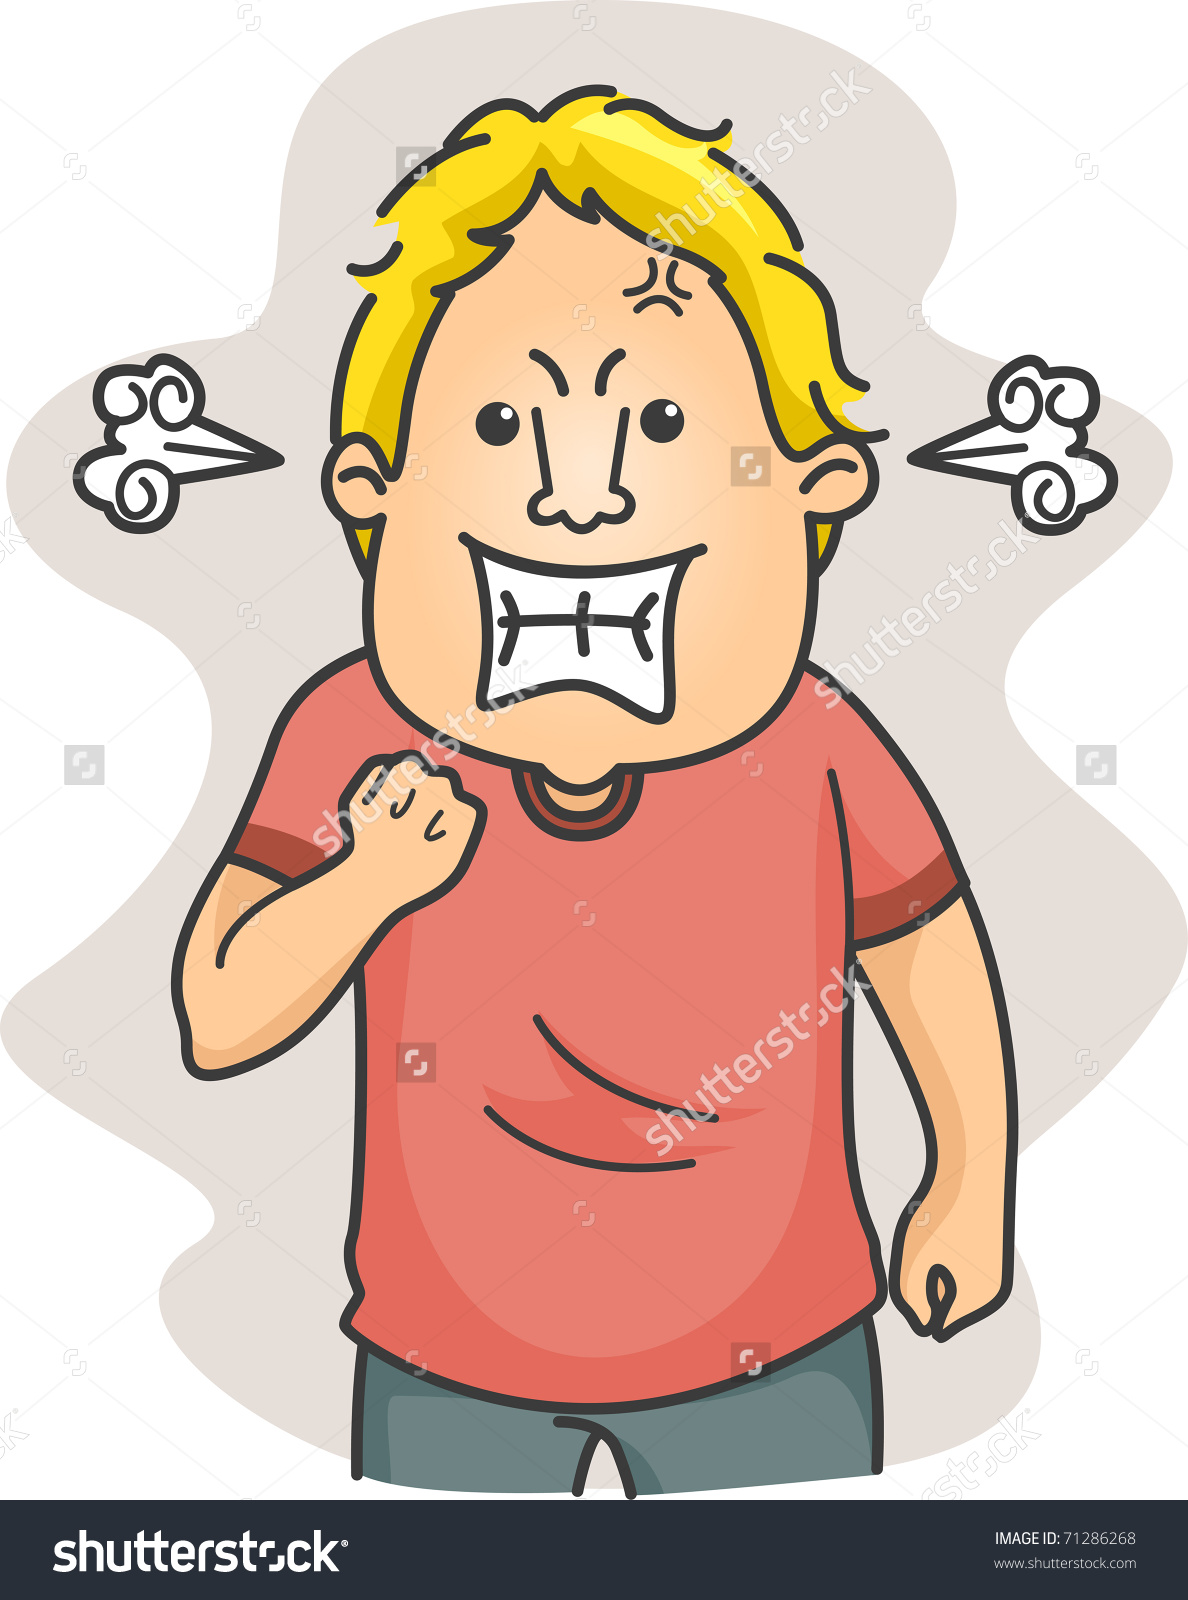 Anger clipart angry manager Illustration Man Fuming clip Stock